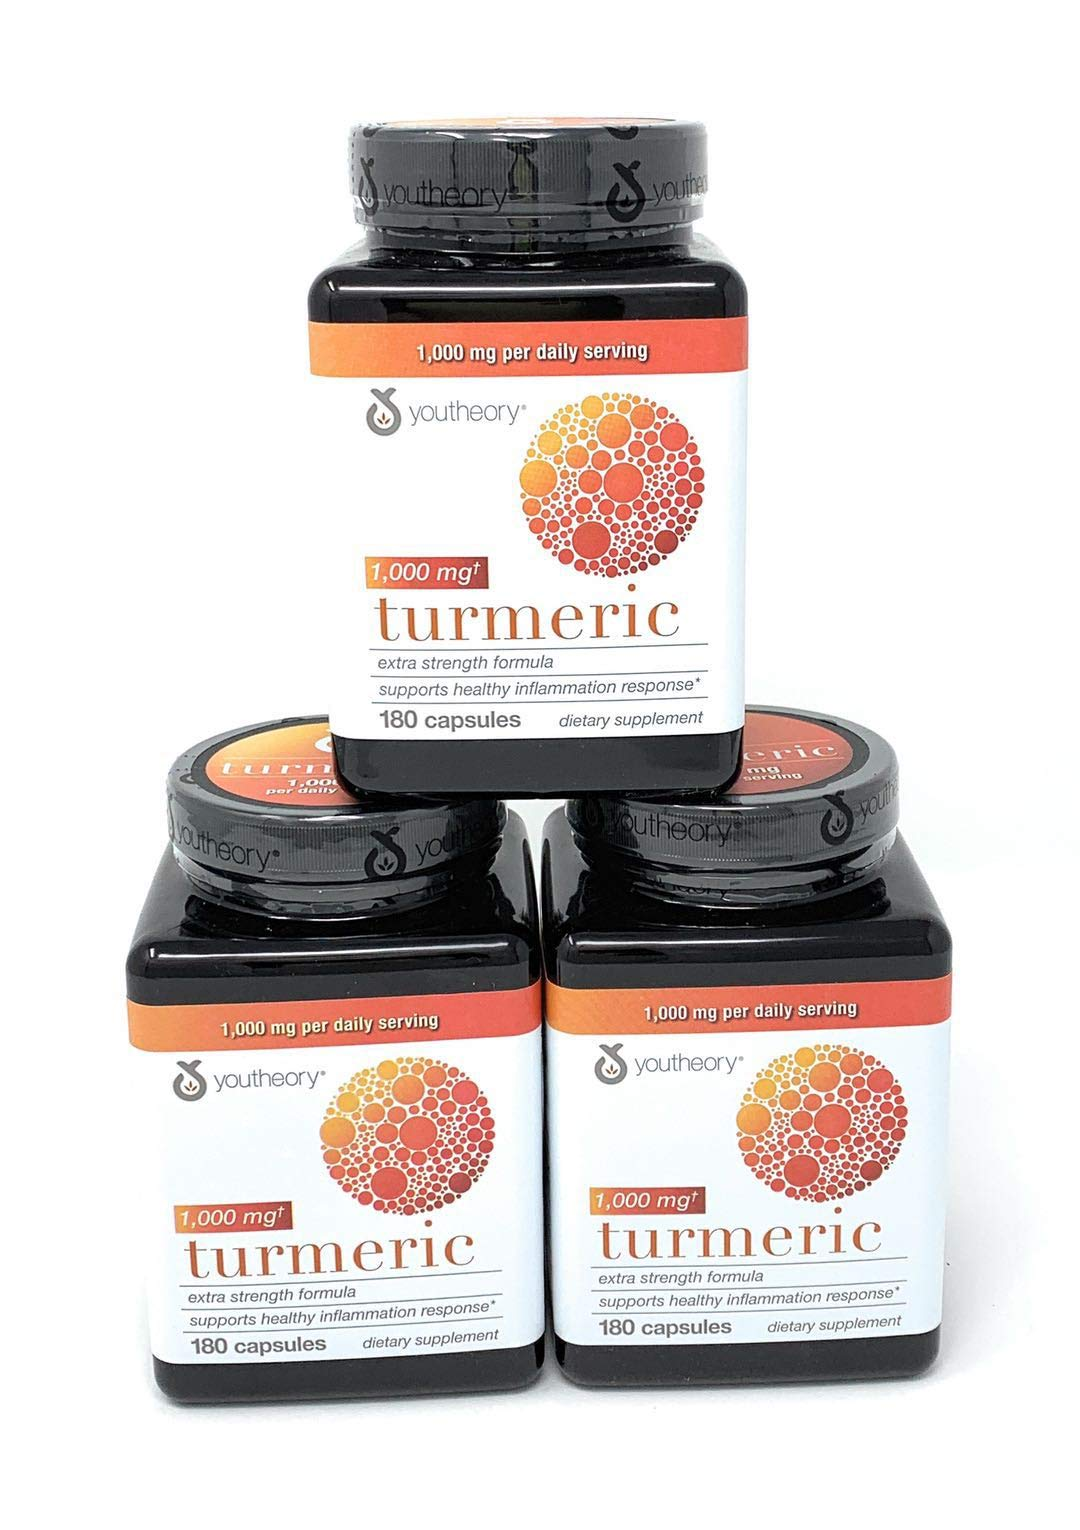 Youtheory Turmeric Extra Strength Formula Capsules 1,000 mg per Daily, 180 Count (Pack of 3)